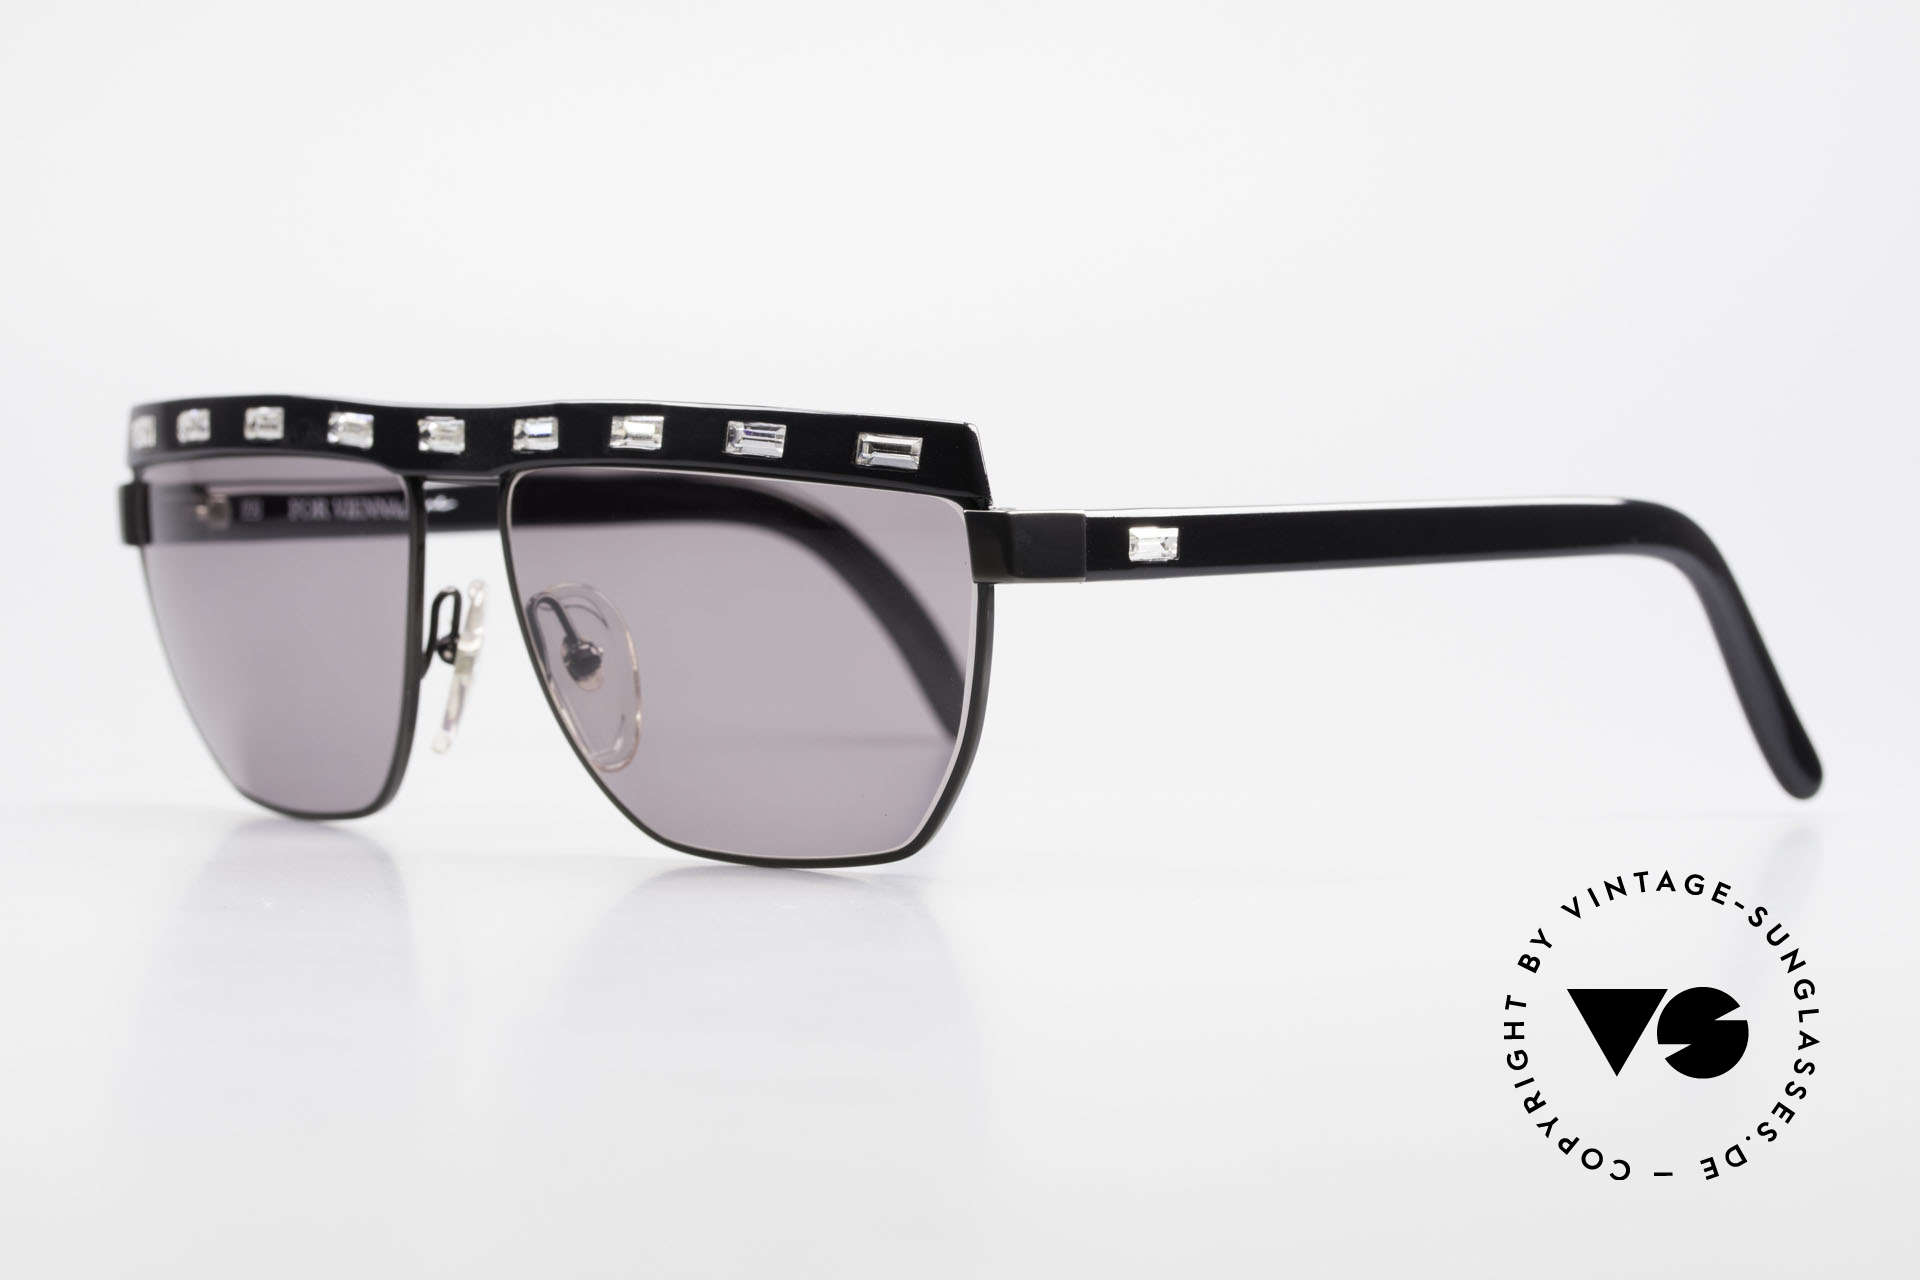 Paloma Picasso 3706 Ladies Sunglasses Crystal Gem, in 1990, Paloma created these beautiful sunglasses, Made for Women